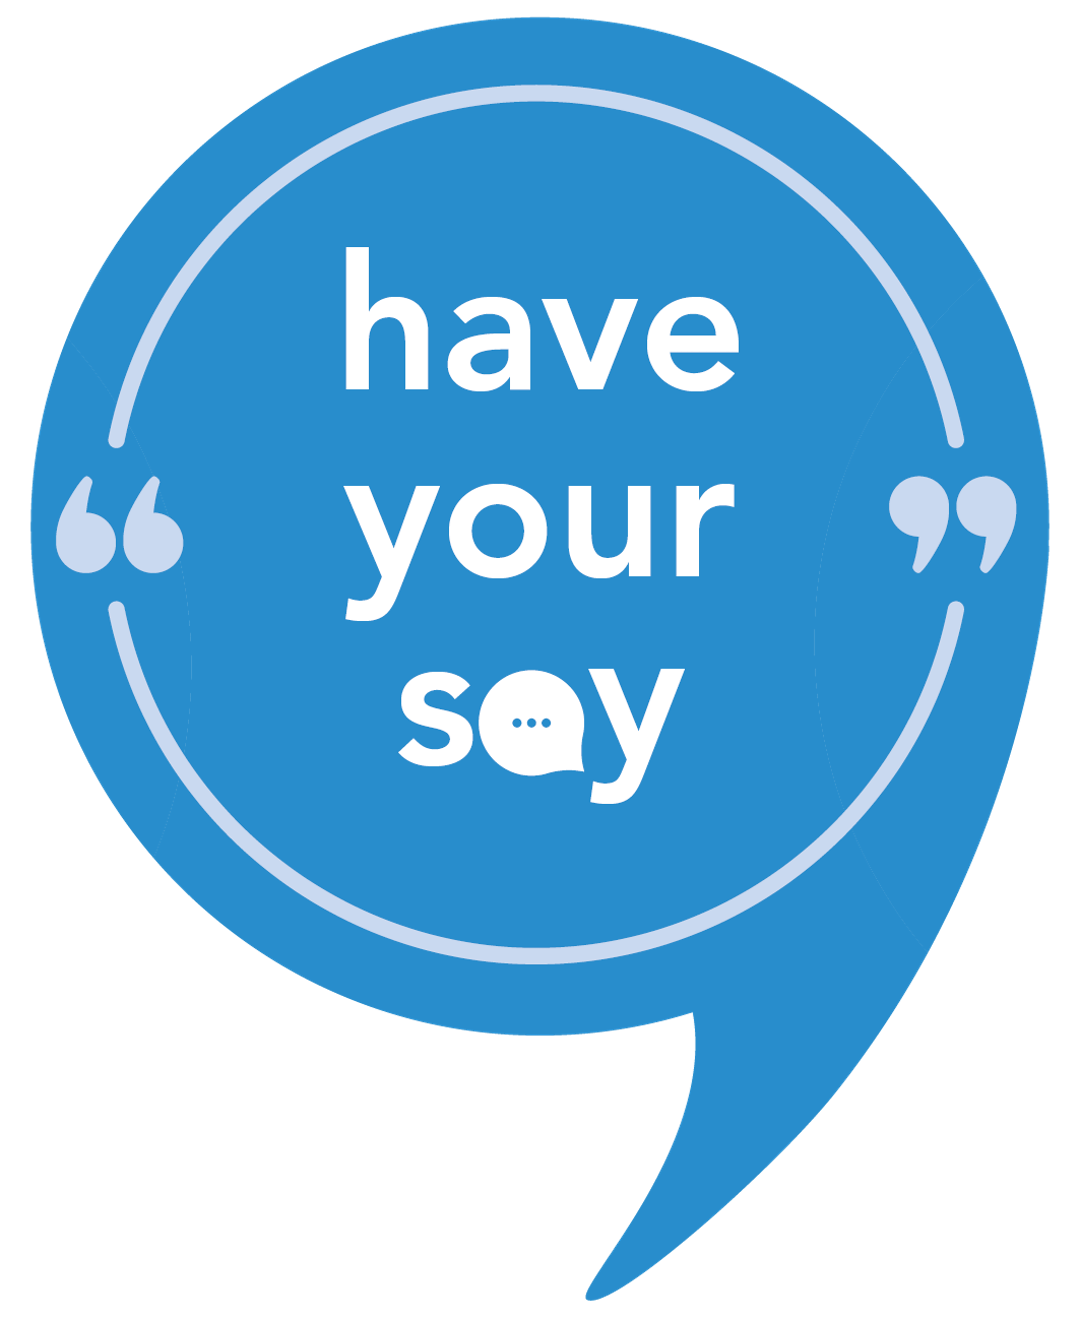 Have your say logo   successful blue